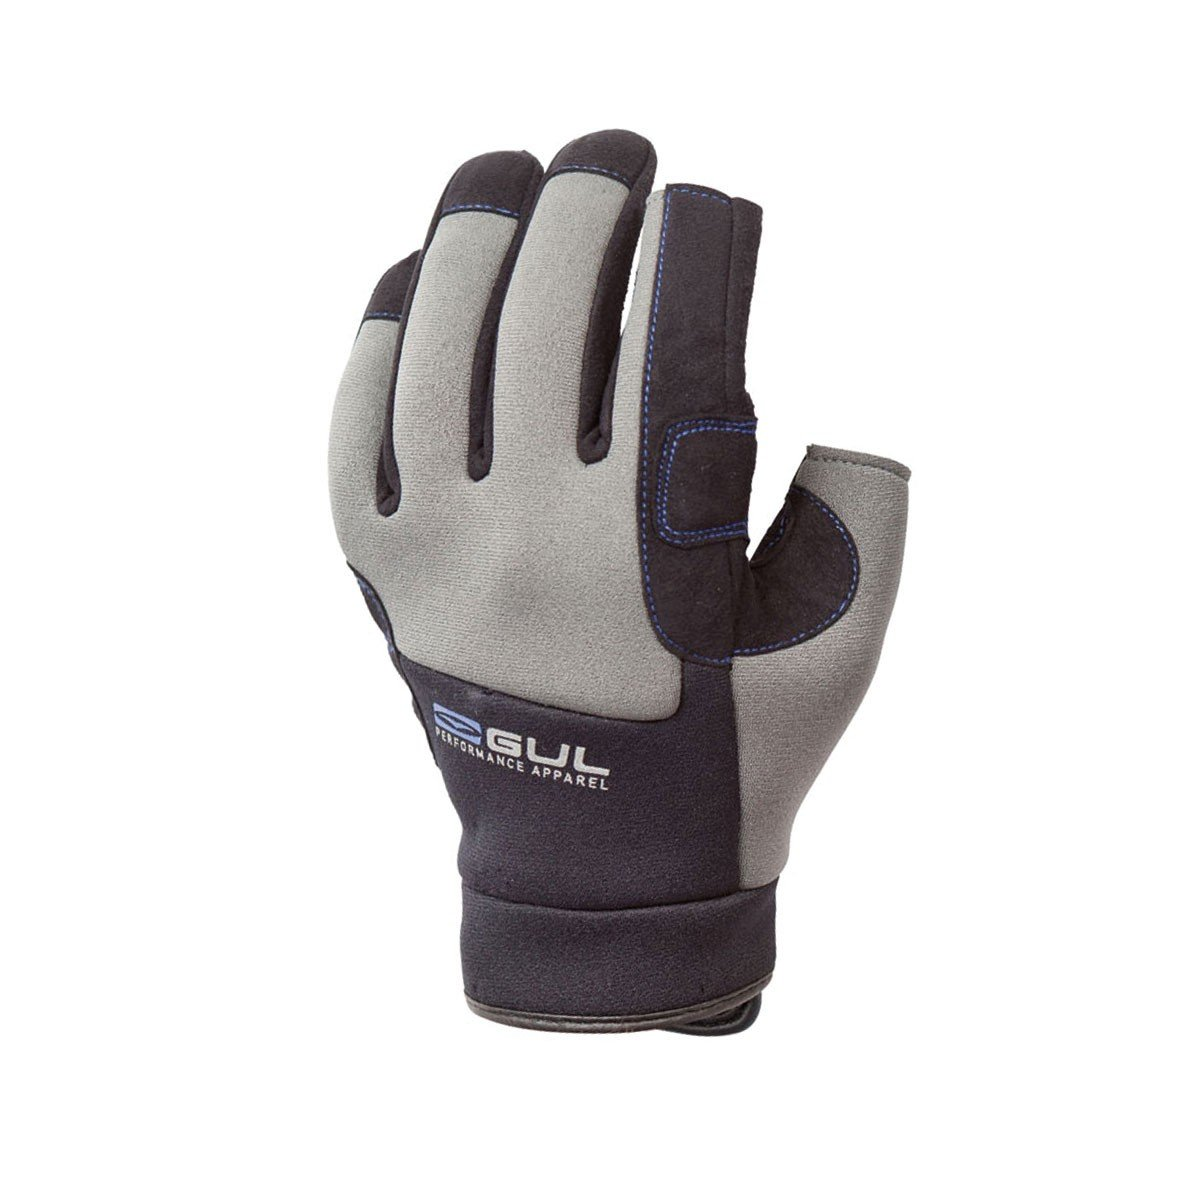 Gul Neoprene Three Finger Winter Sailing Glove   Gl1240-A3